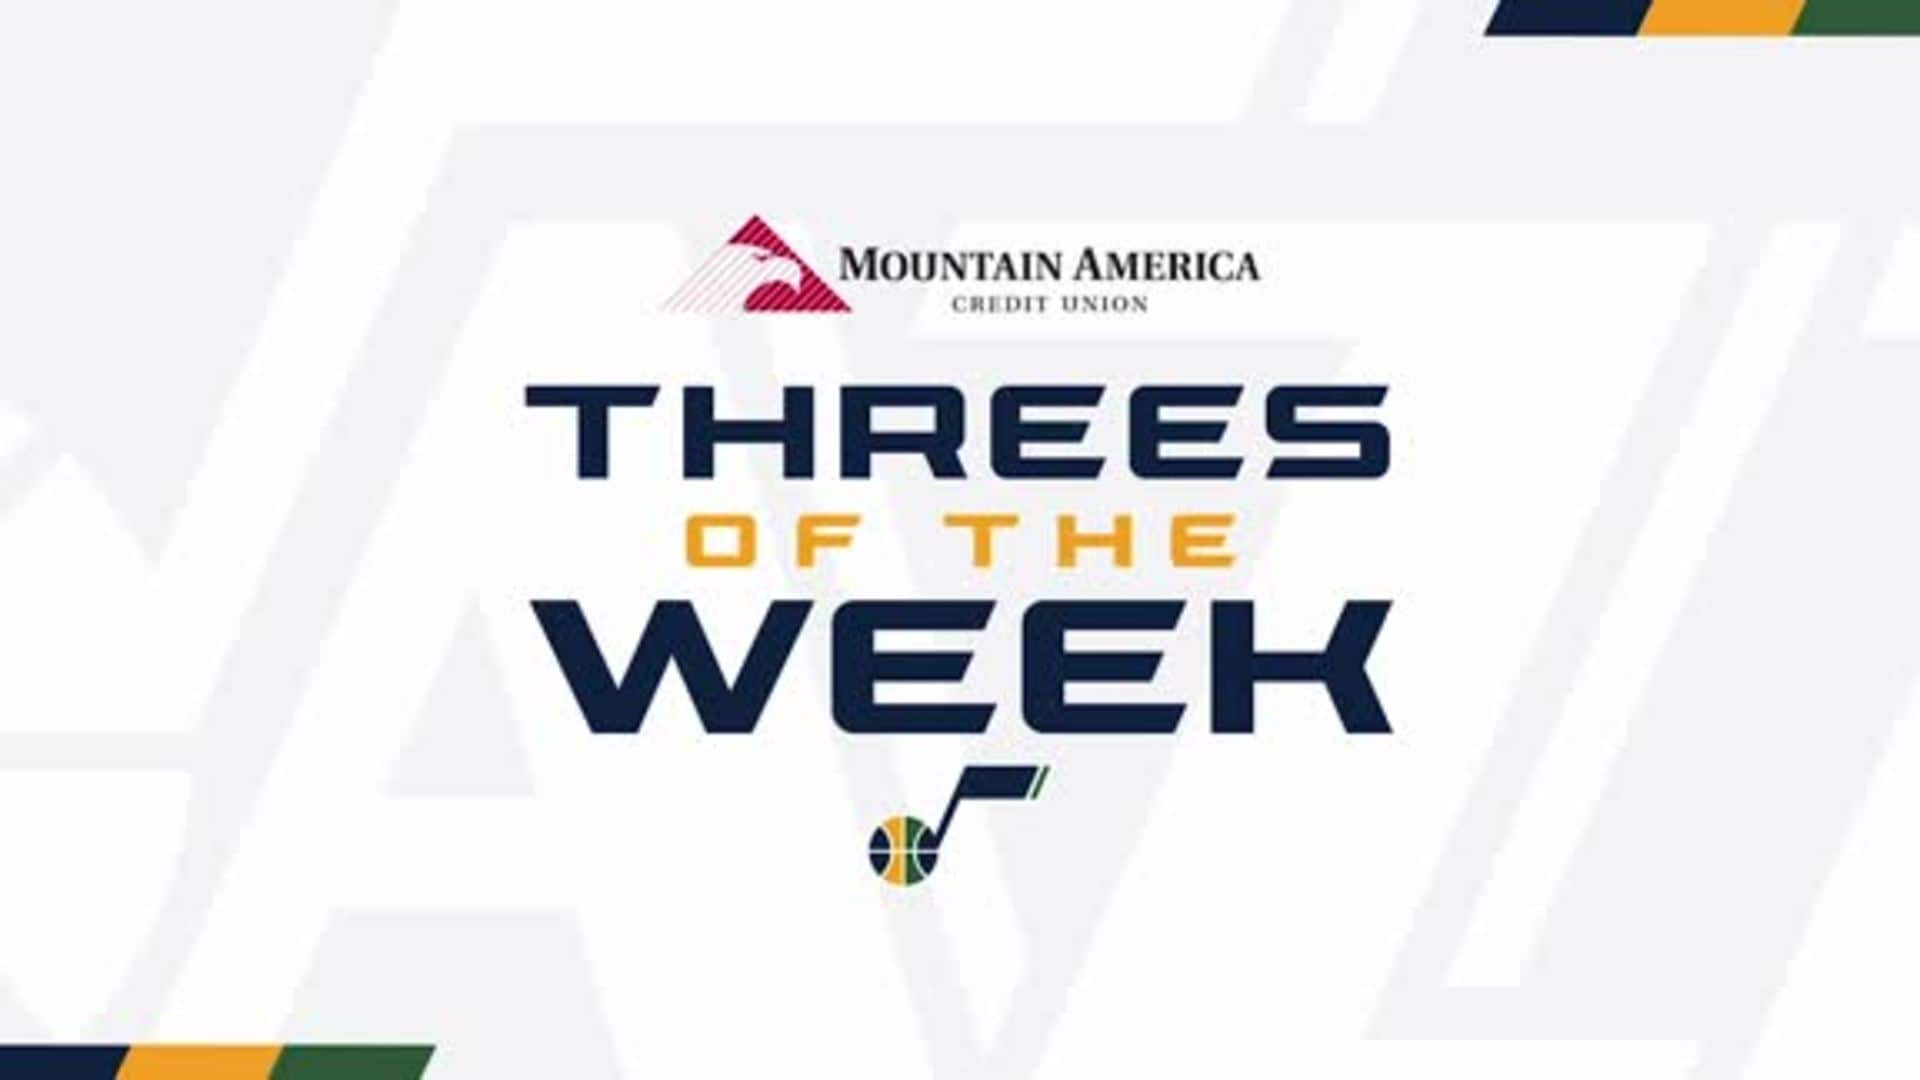 Threes of the Week - 12.16.19